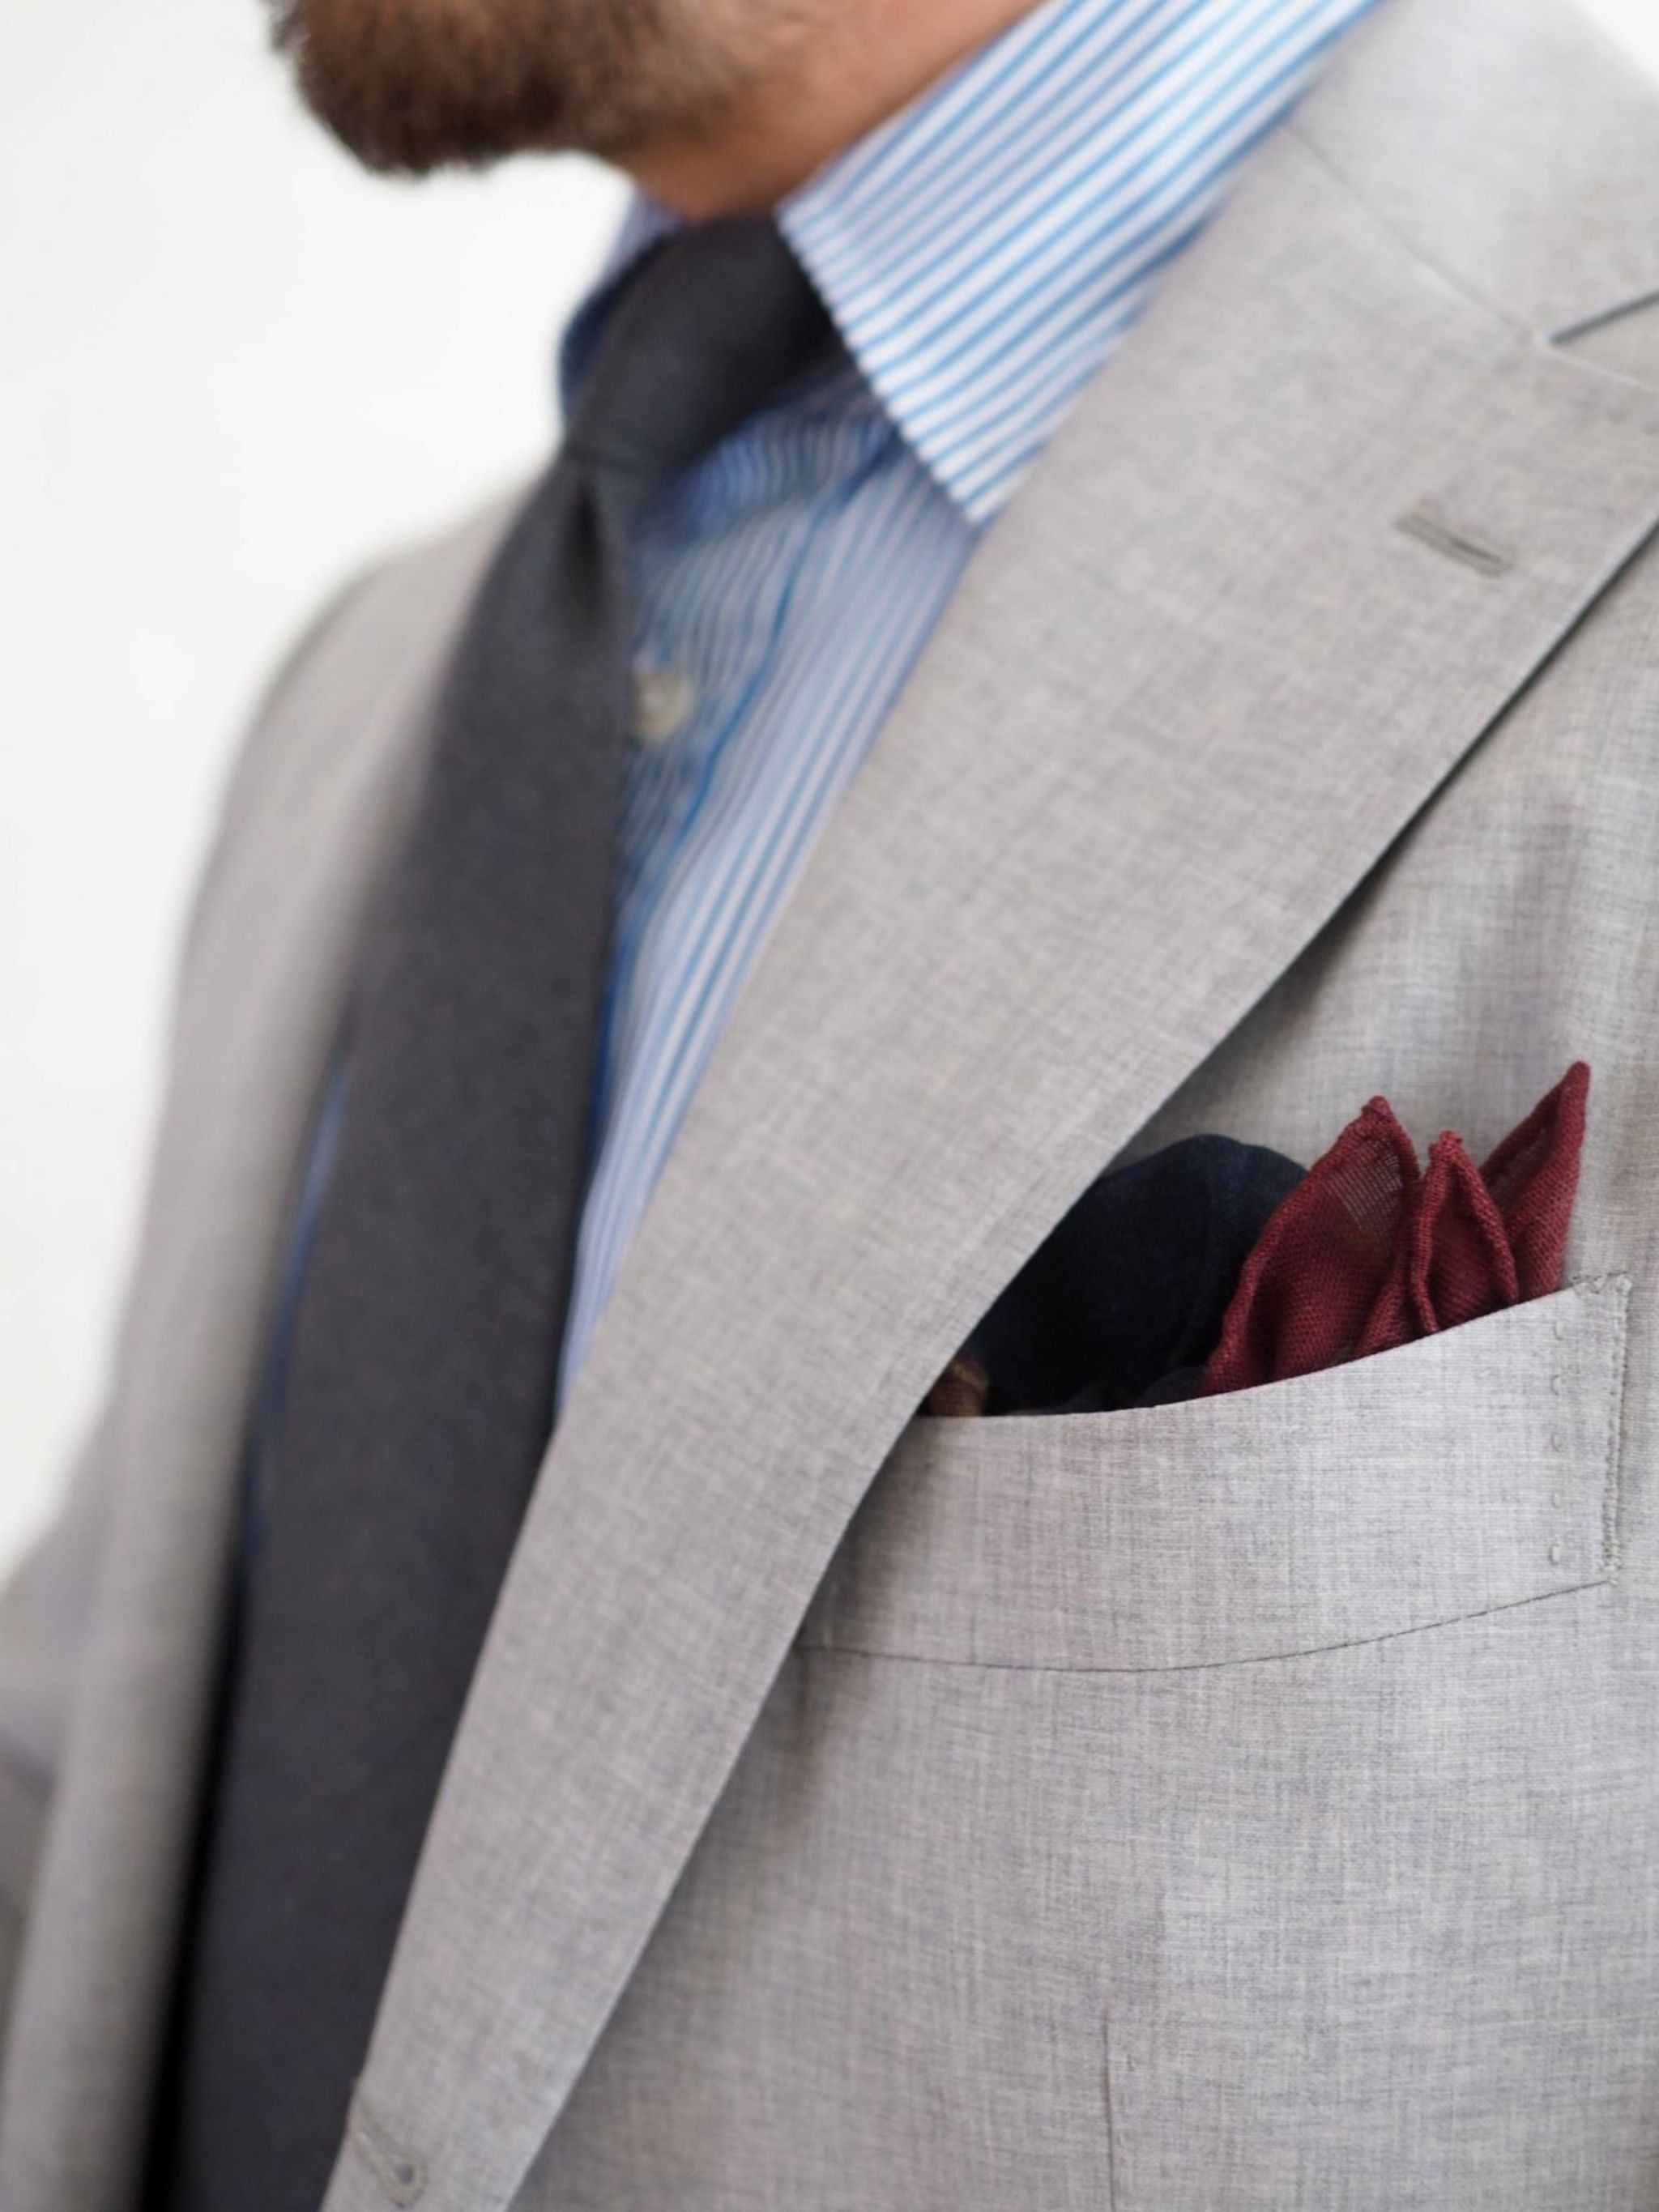 Favorite suits - DLA symposium pocket square with the gray suit and gray wool tie